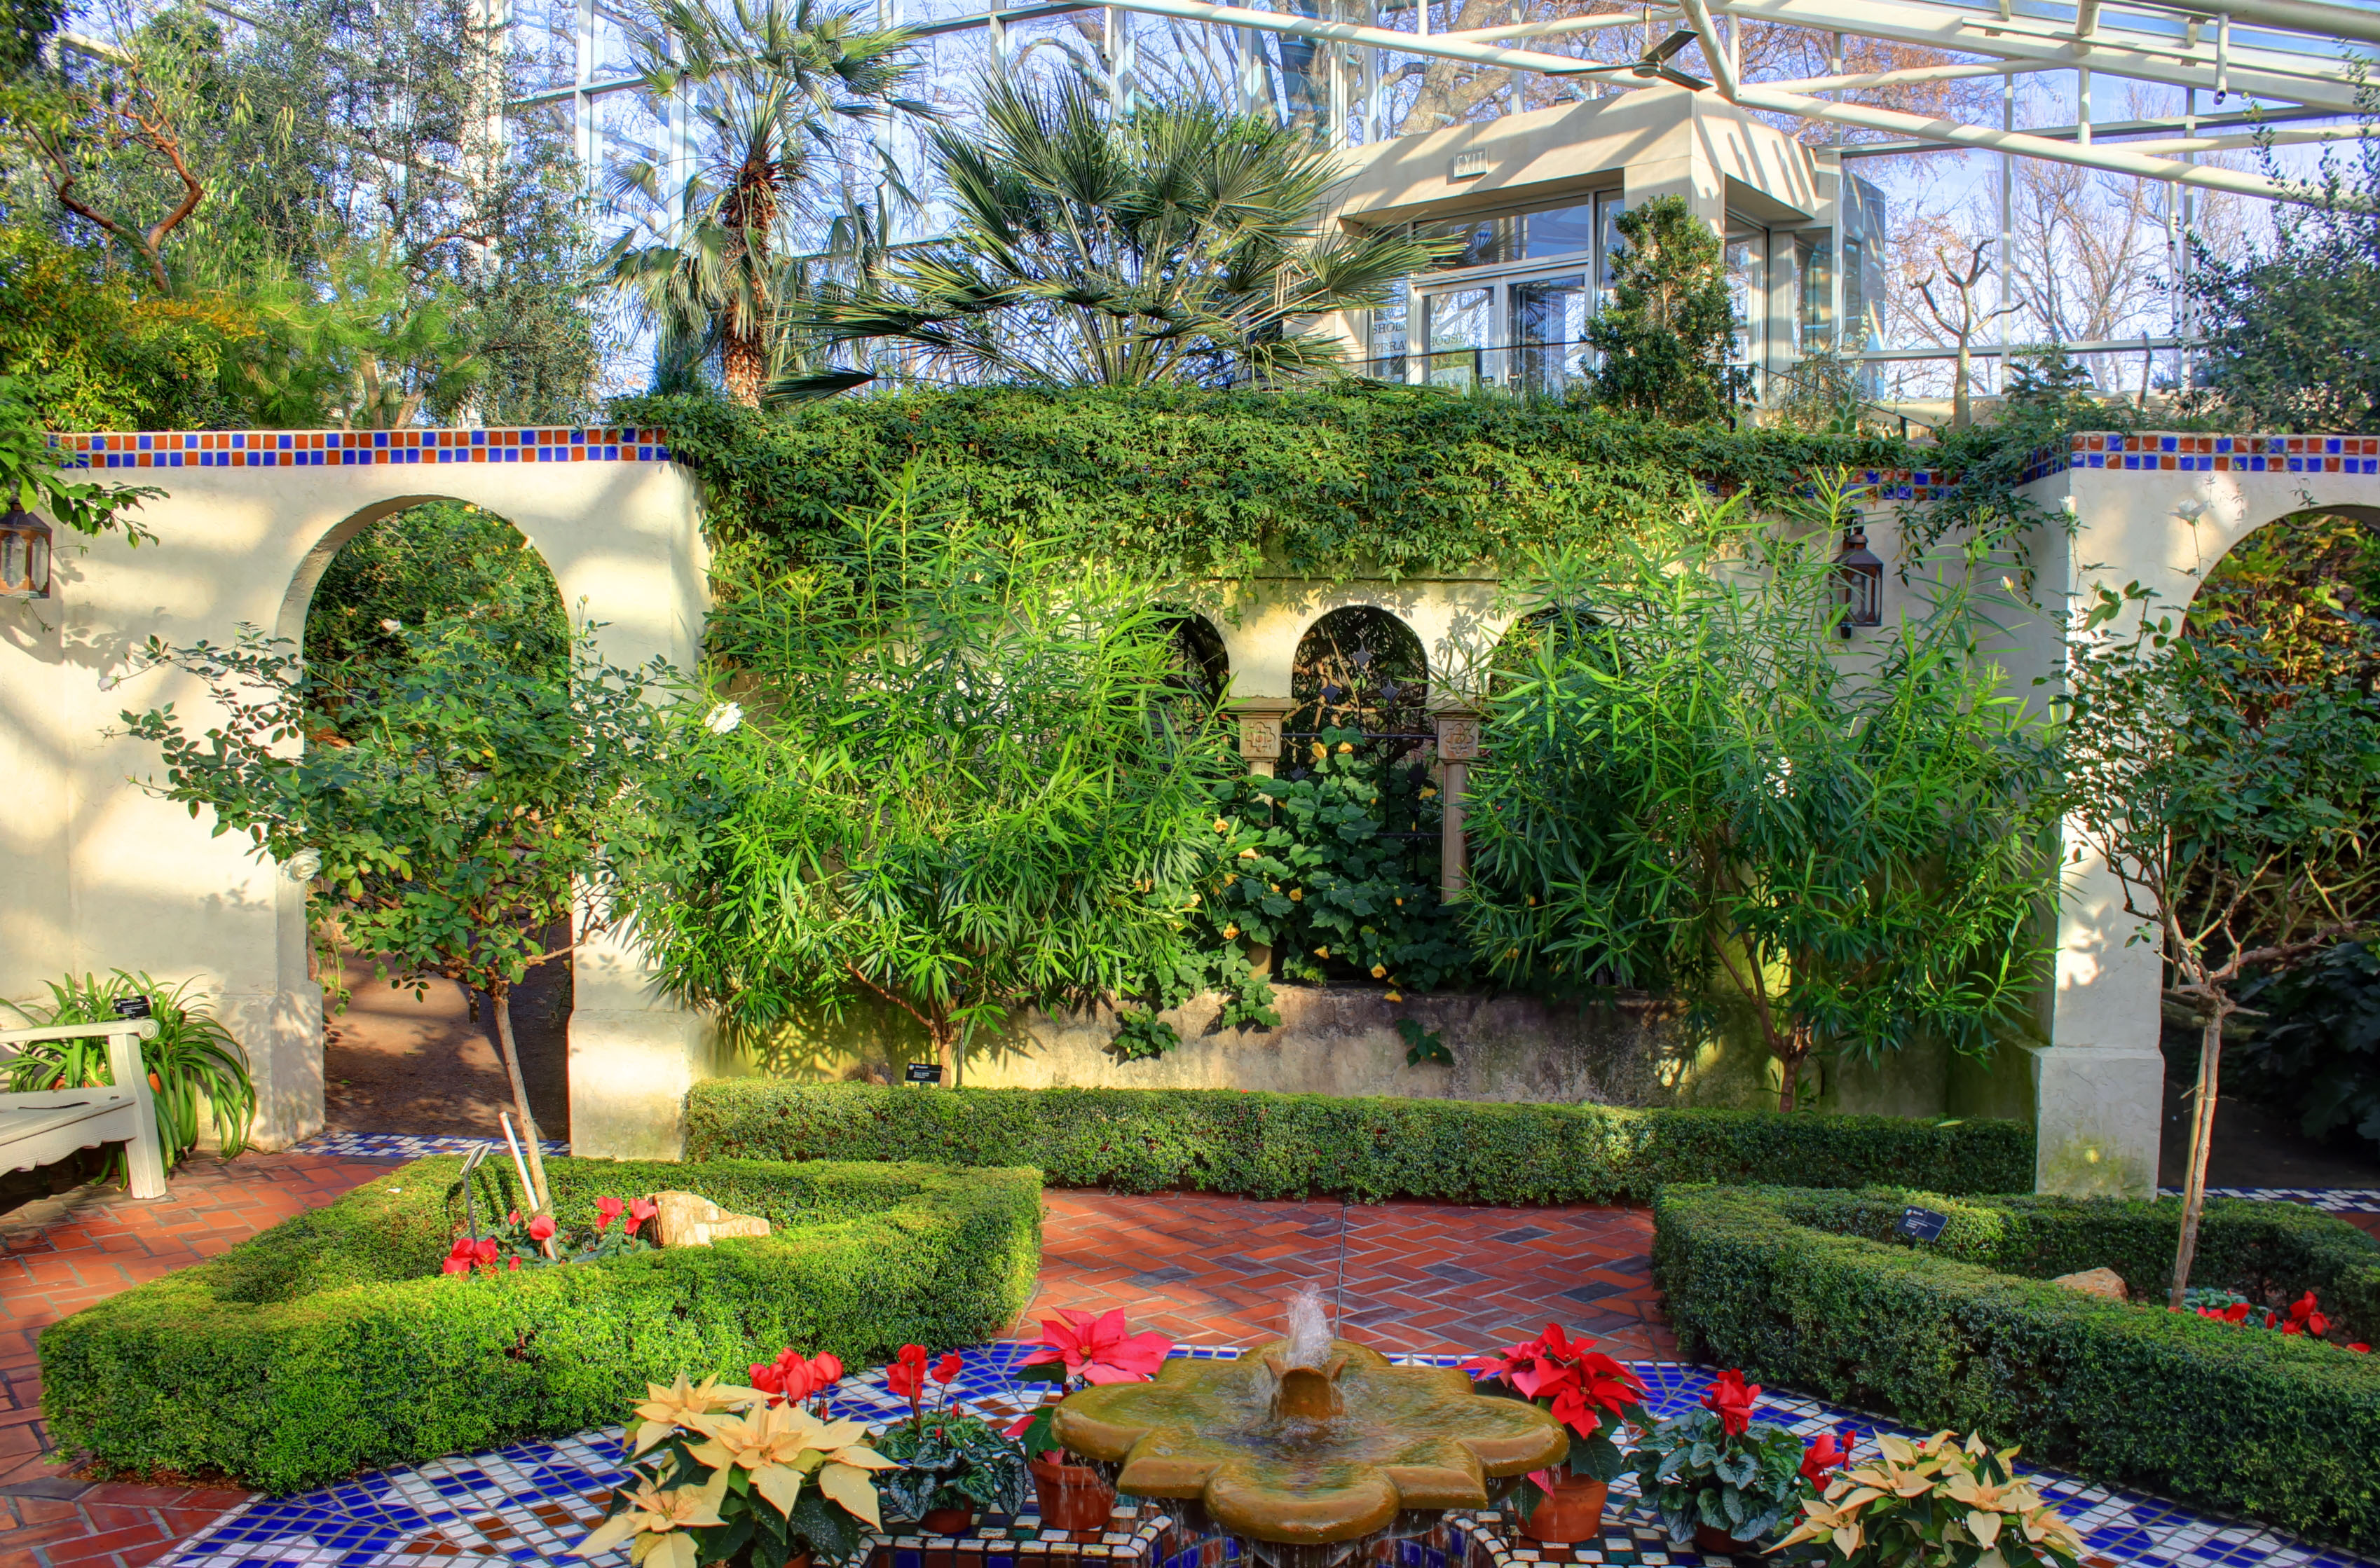 Gfp-st-louis-botanical-gardens-courtyard-in-temperate-house